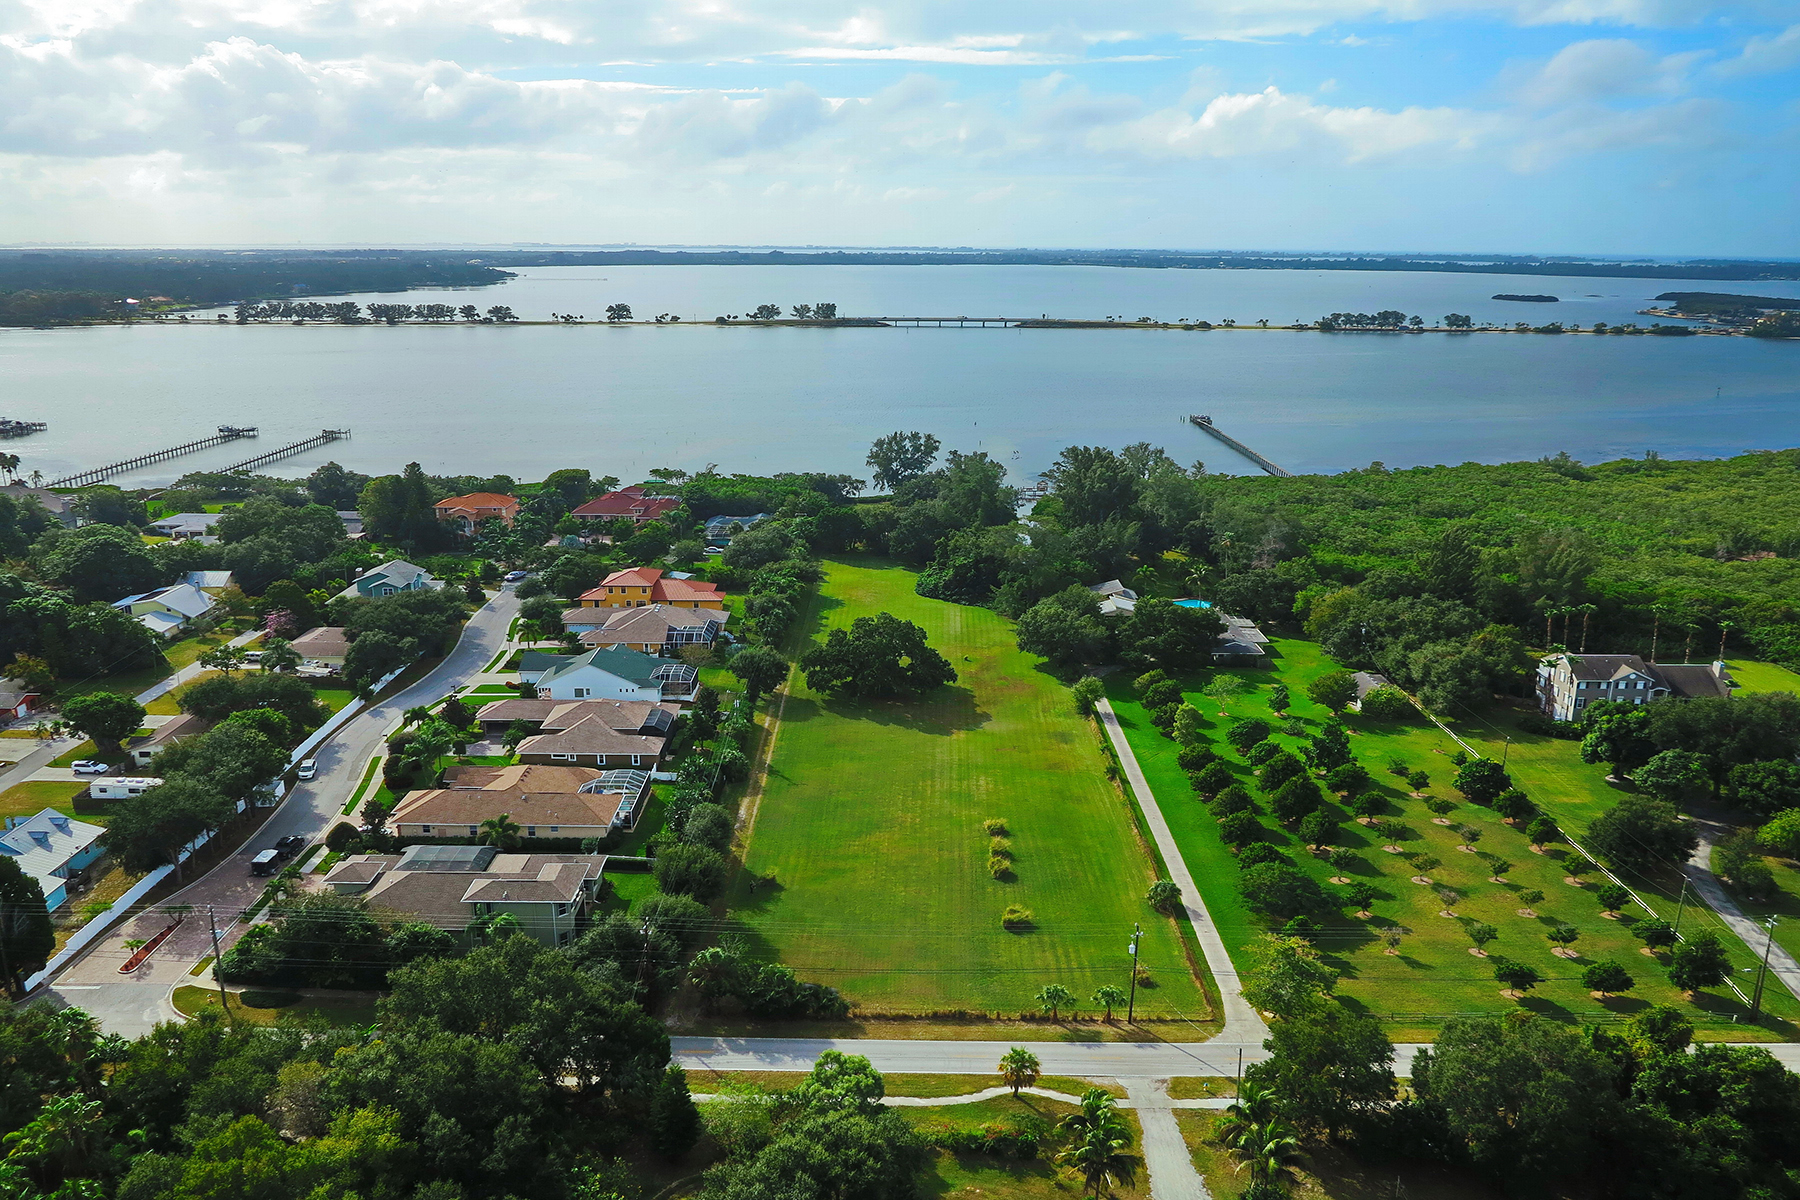 Land for Sale at WEST BRADENTON 8921 9th Ave NW 0 Bradenton, Florida, 34209 United States